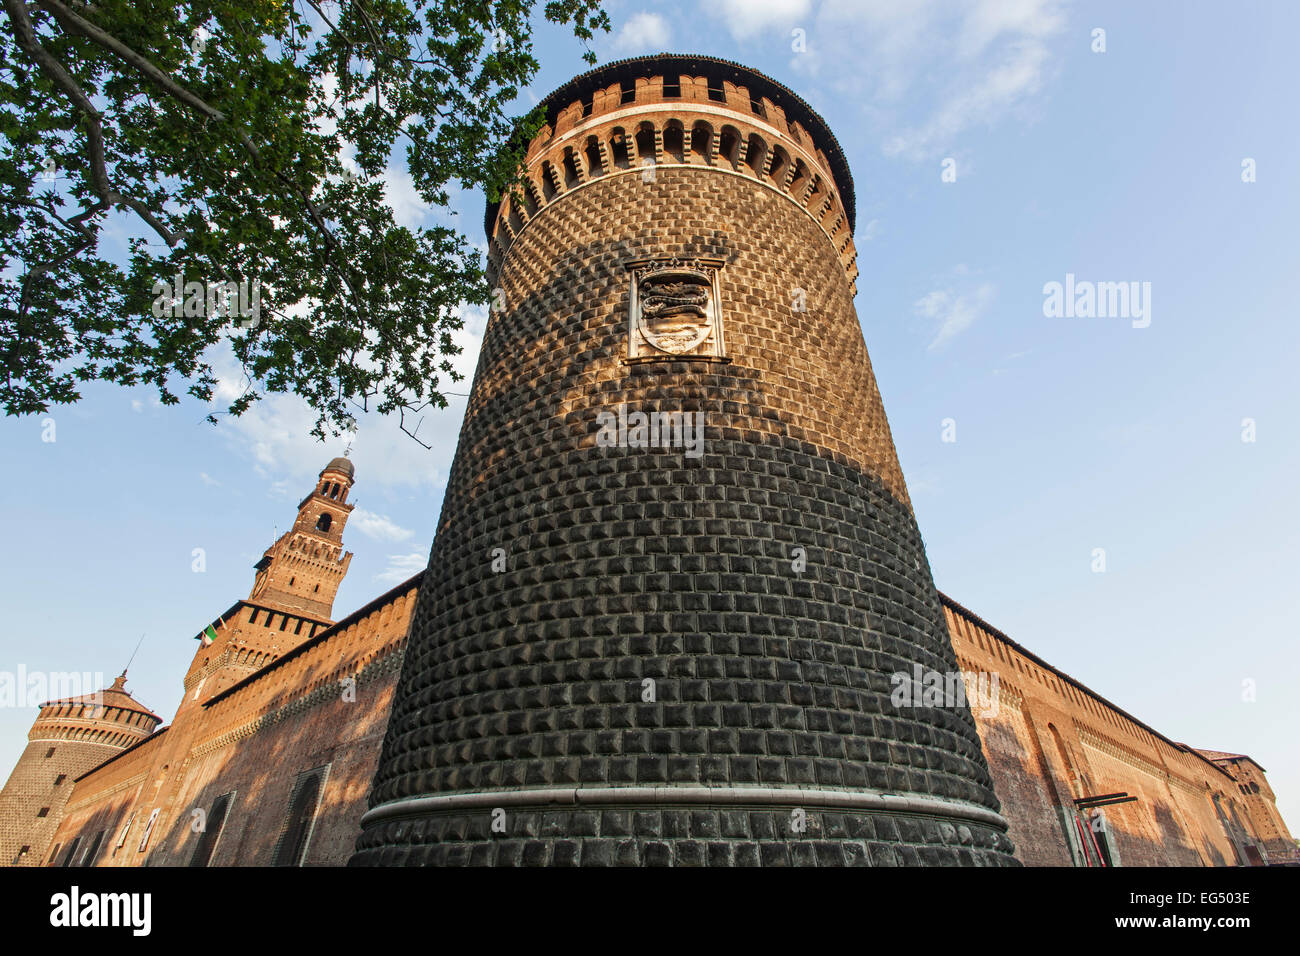 Towers, Sforza Castle, Milan, Italy - Stock Image